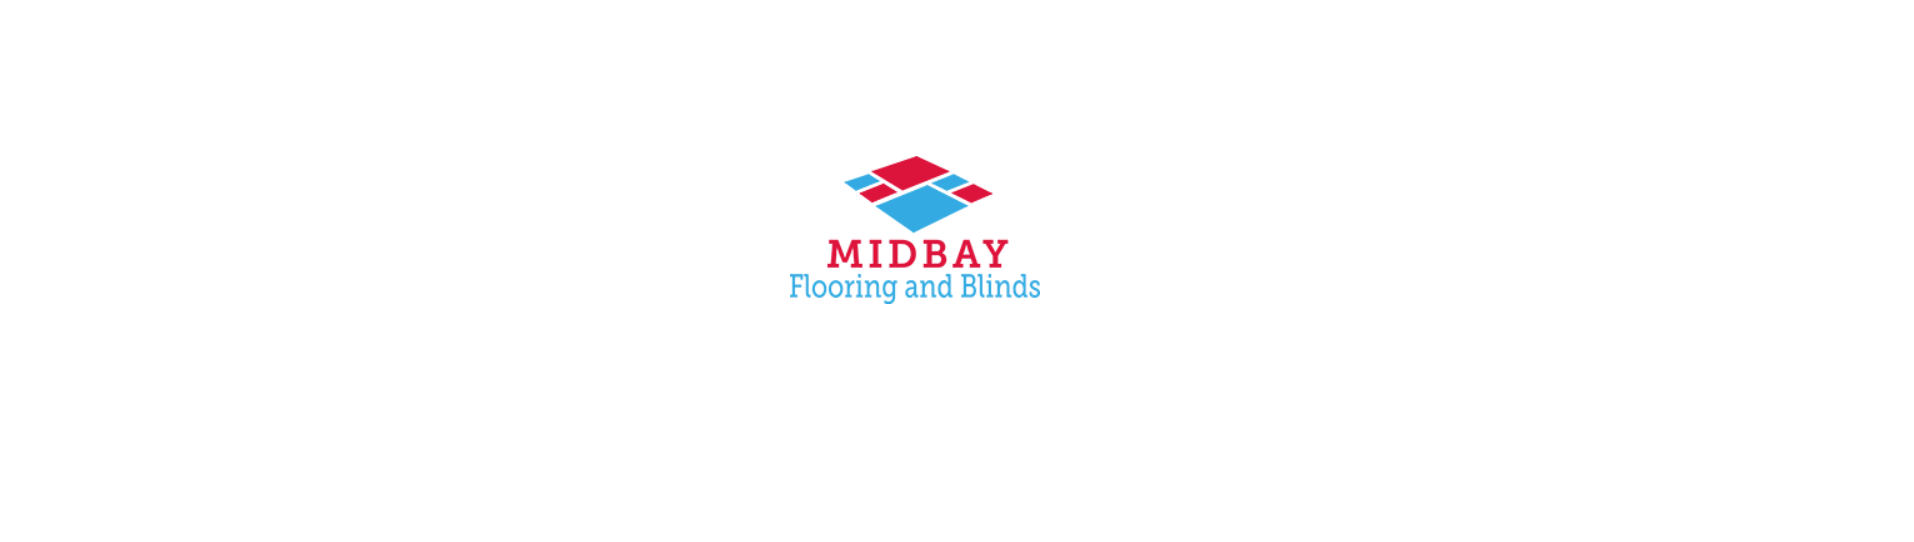 MIDBAY Flooring and Blinds - 4518 FL-20, Niceville, FL 32578